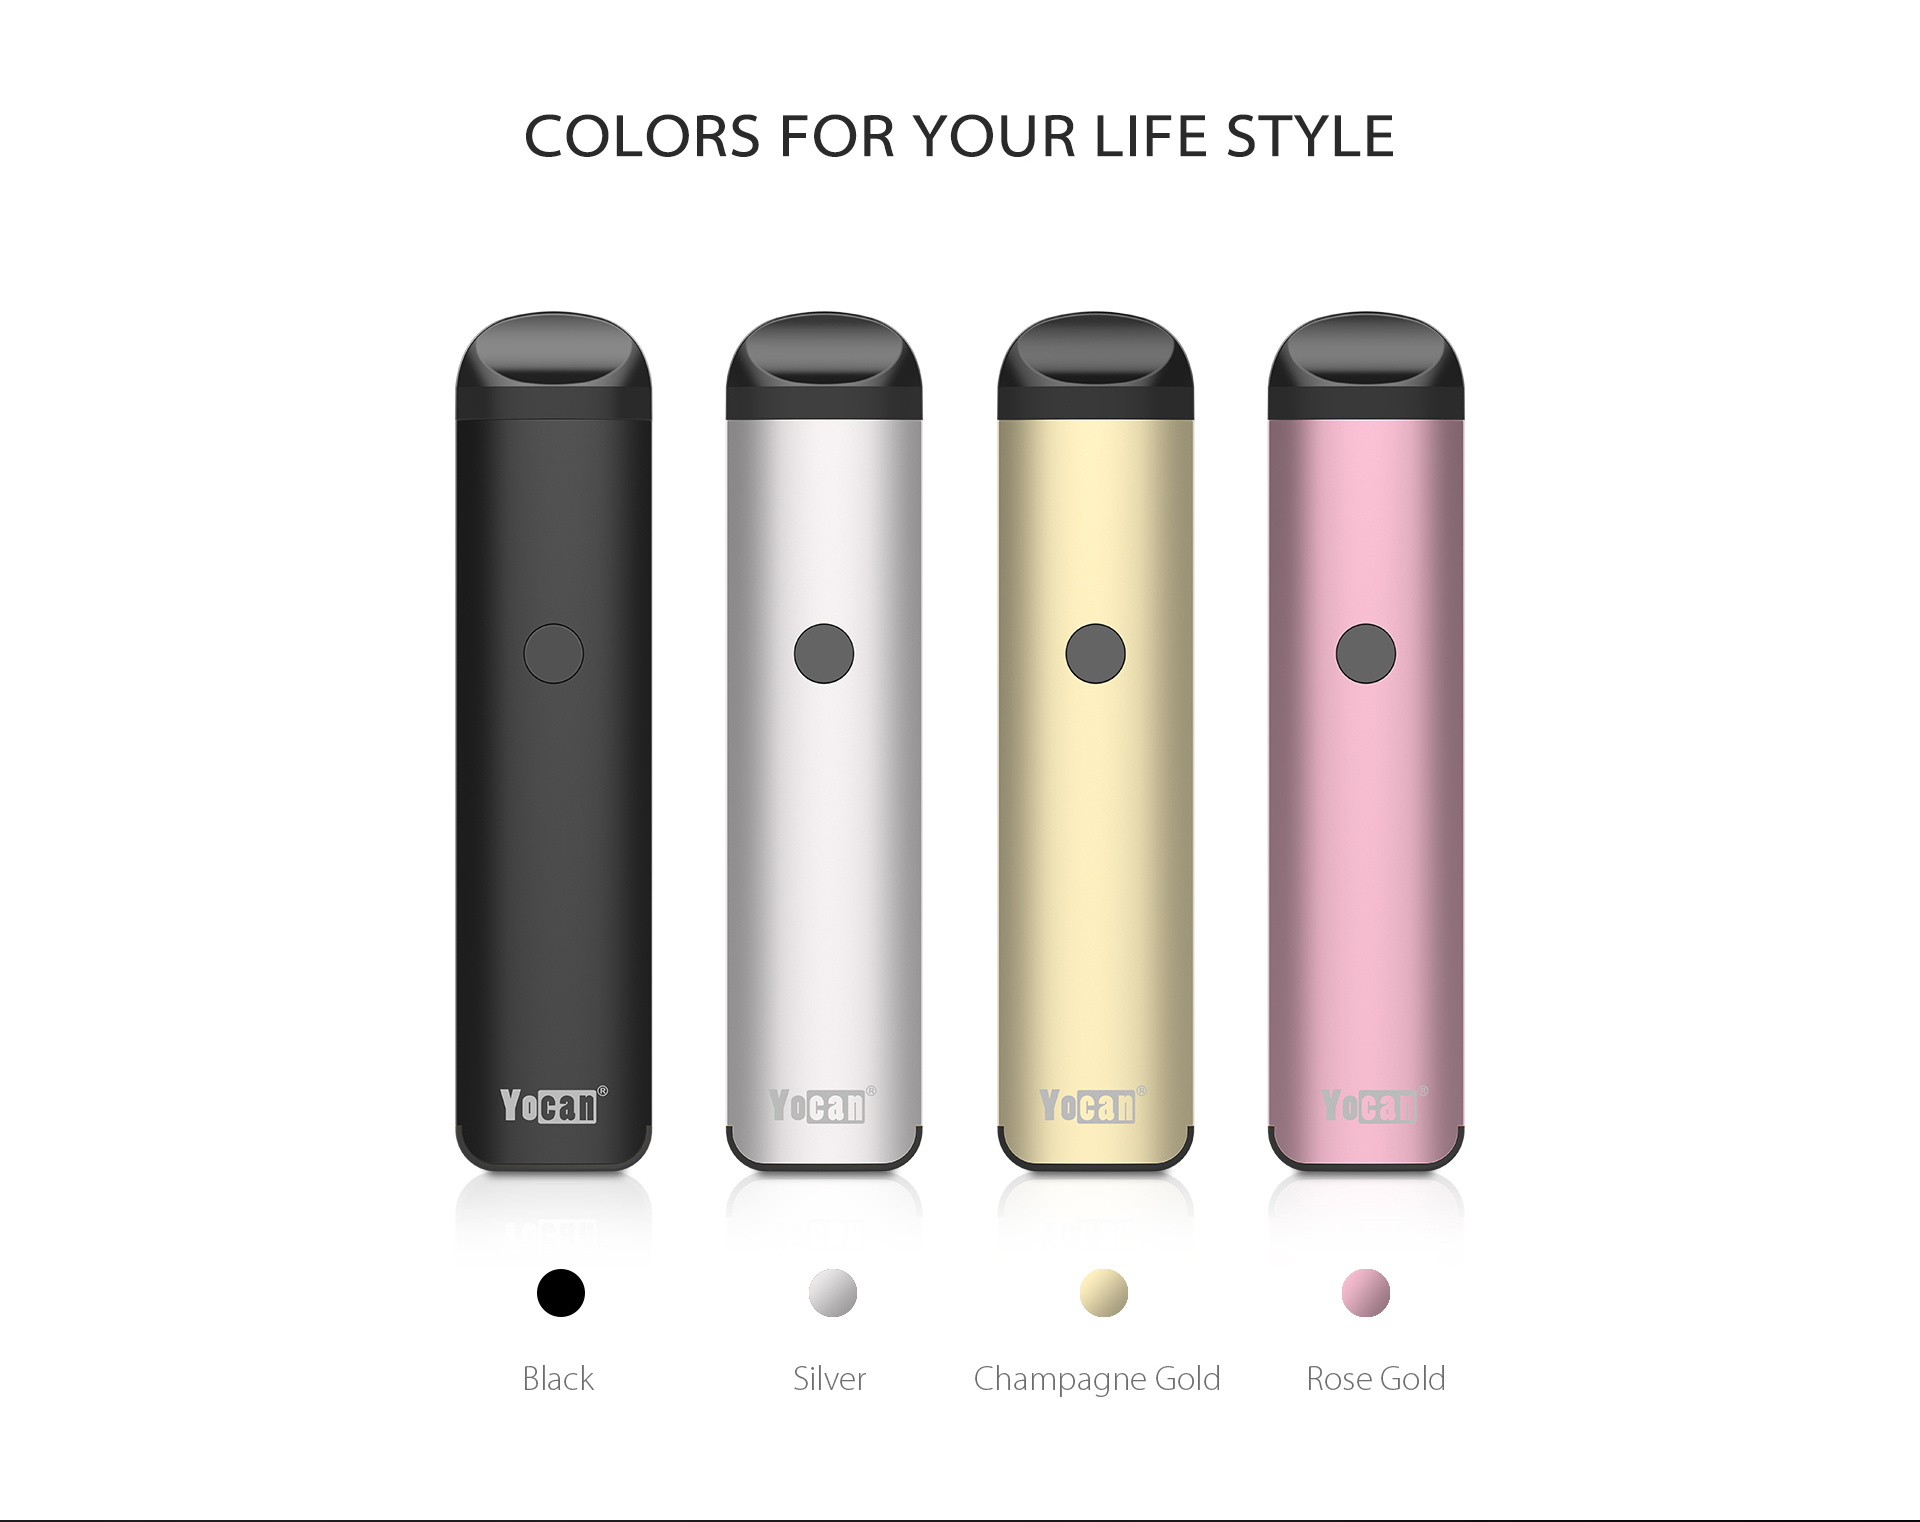 The Yocan Evolve 2.0 comes with four colors: black, silver, champagne gold and rose gold.